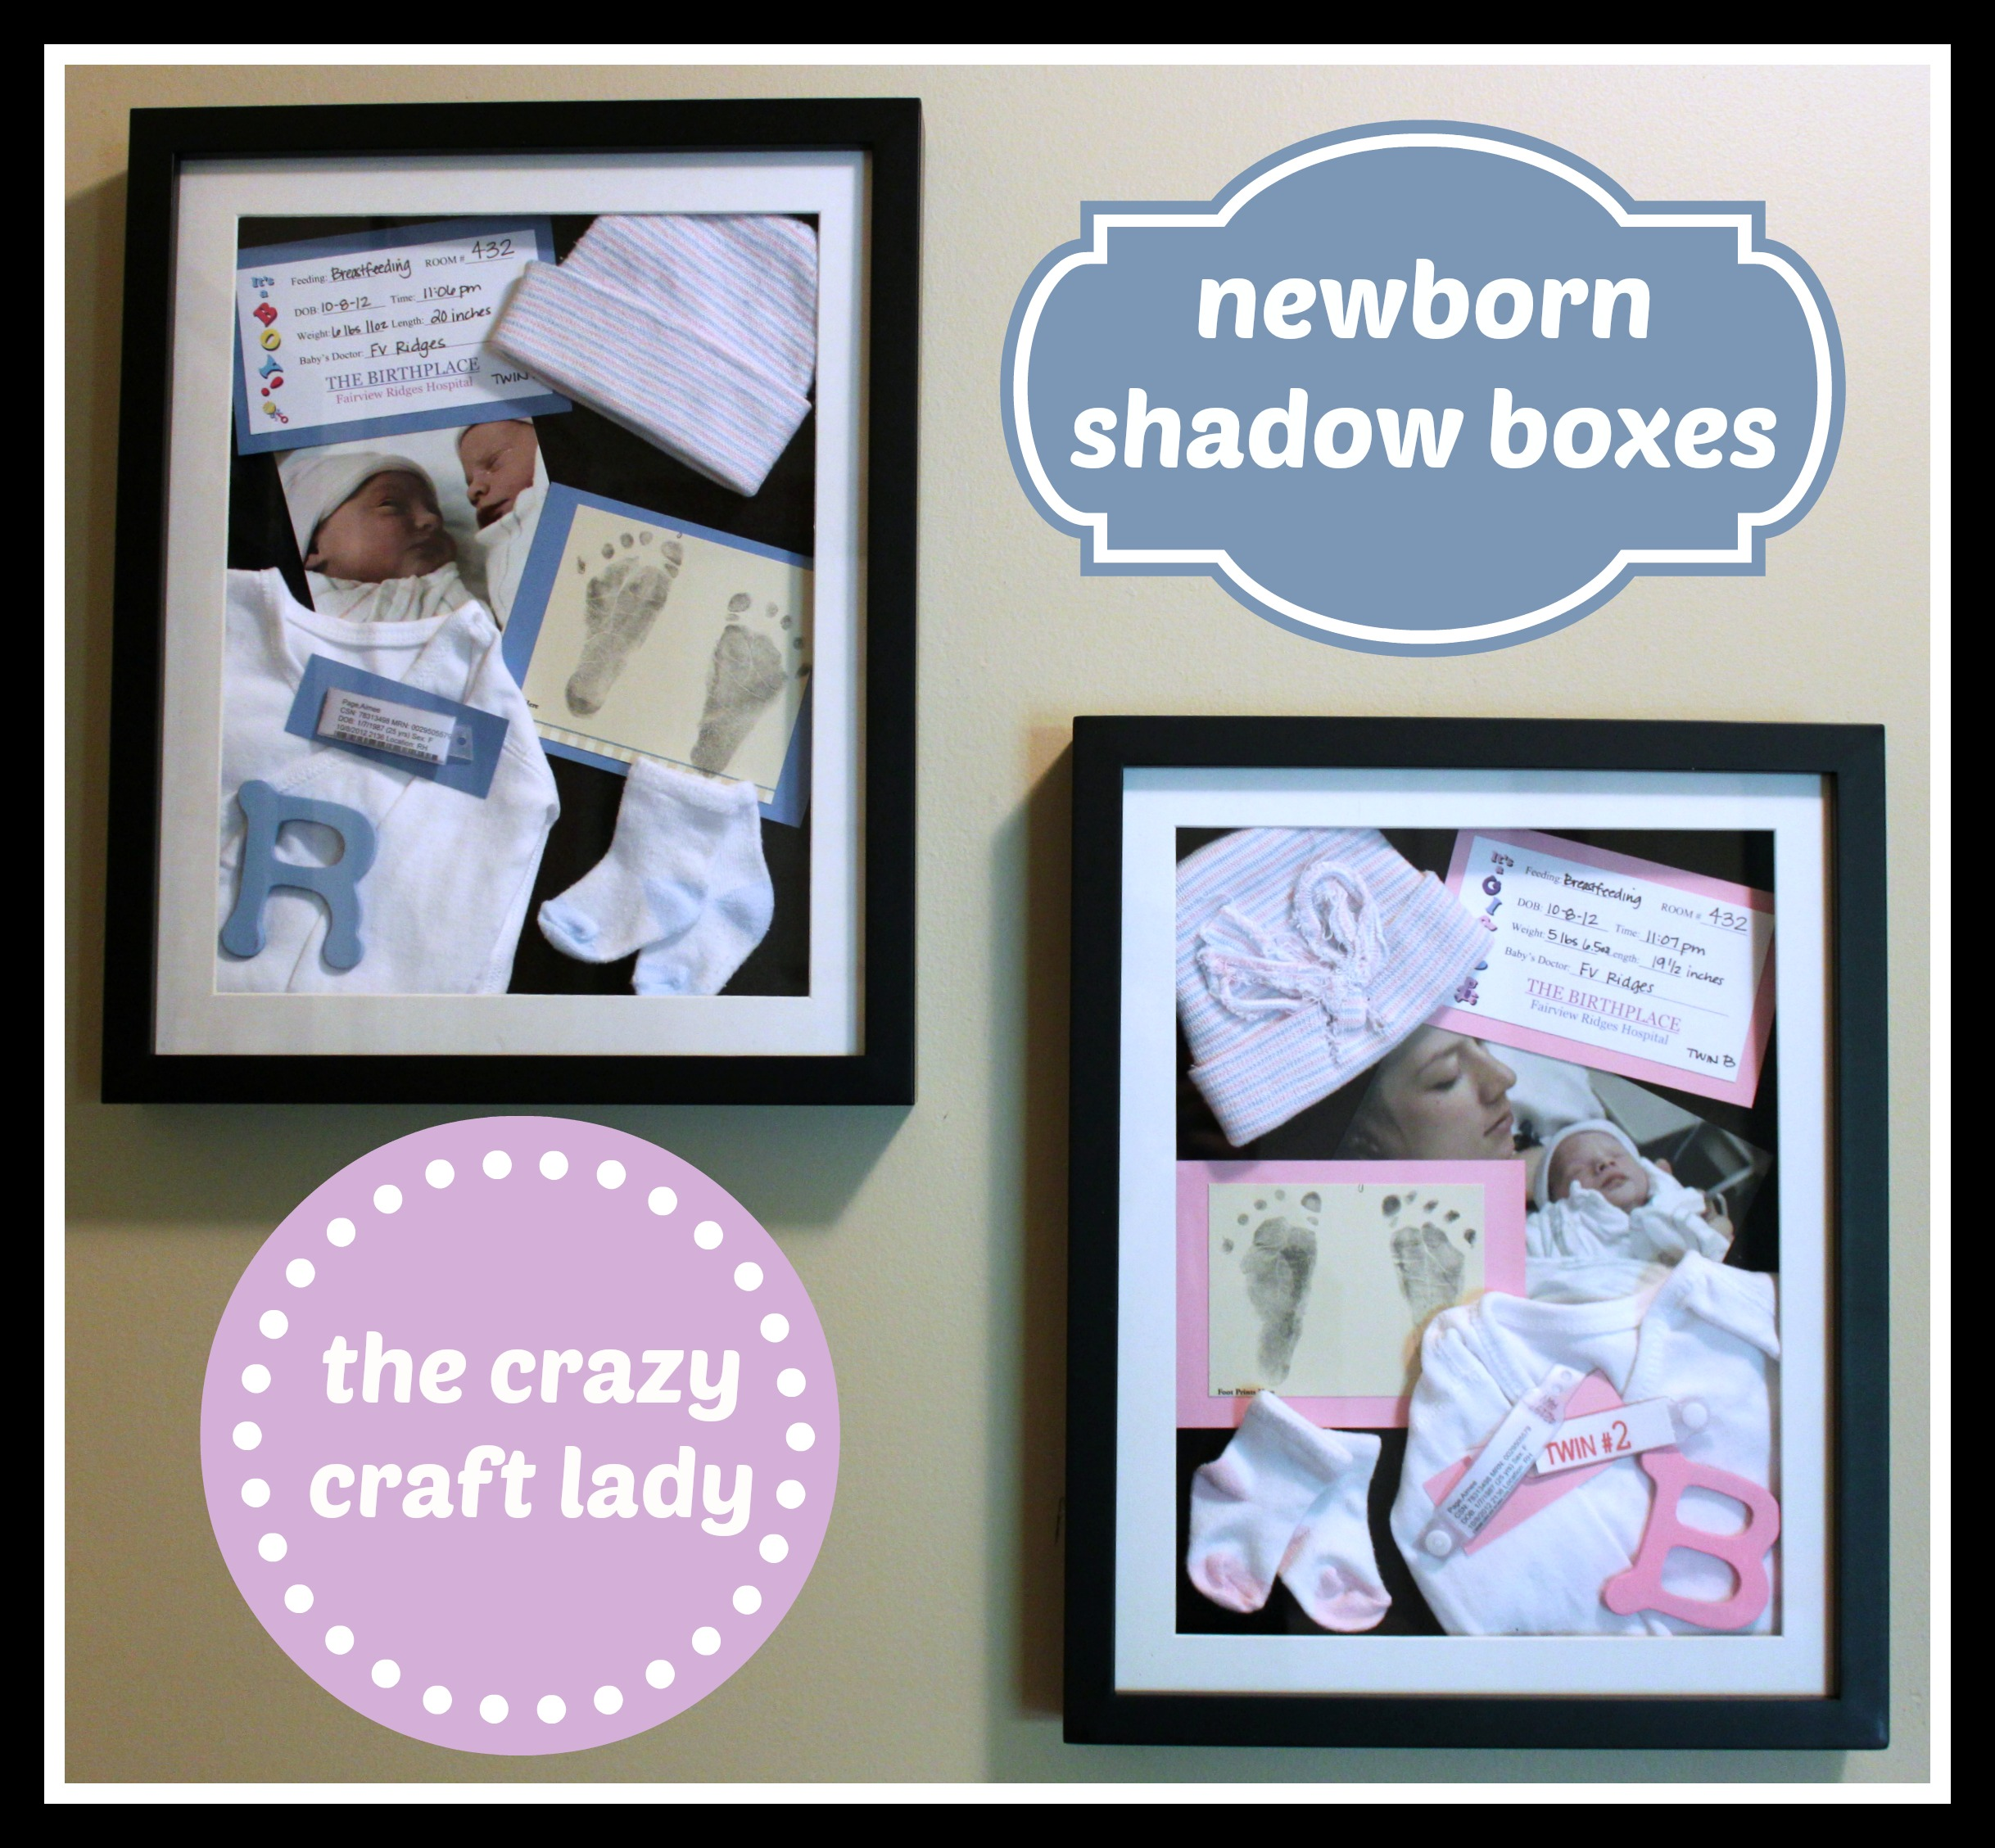 newborn shadow boxes for the twins